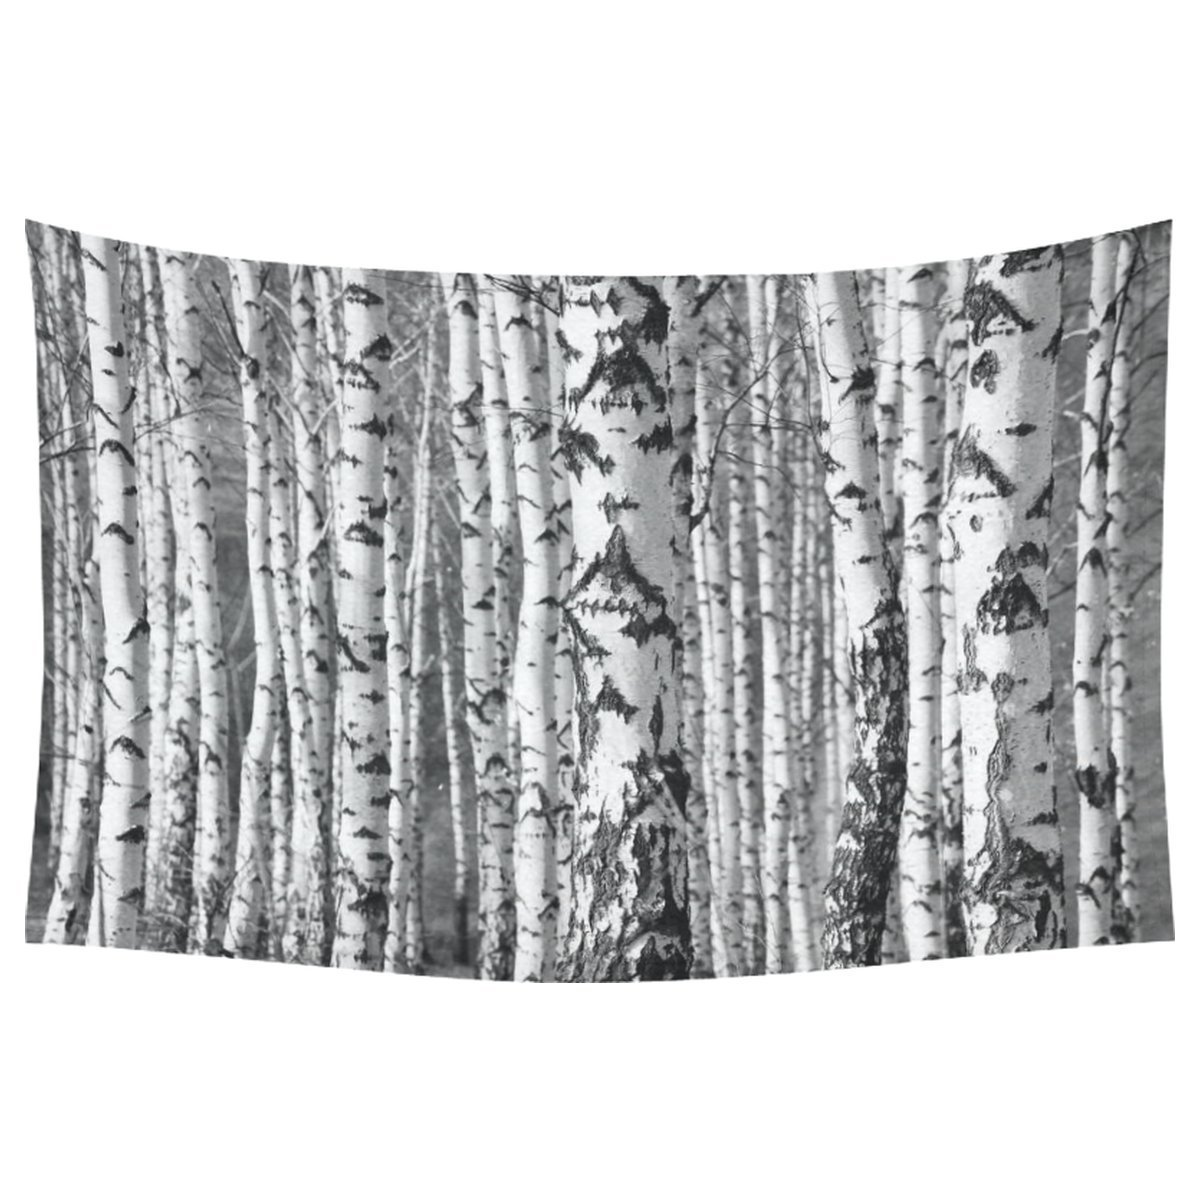 Natural Landscape Wall Art Home Decor, Birch Trunks Tree Art Black and White Cotton Linen Tapestry